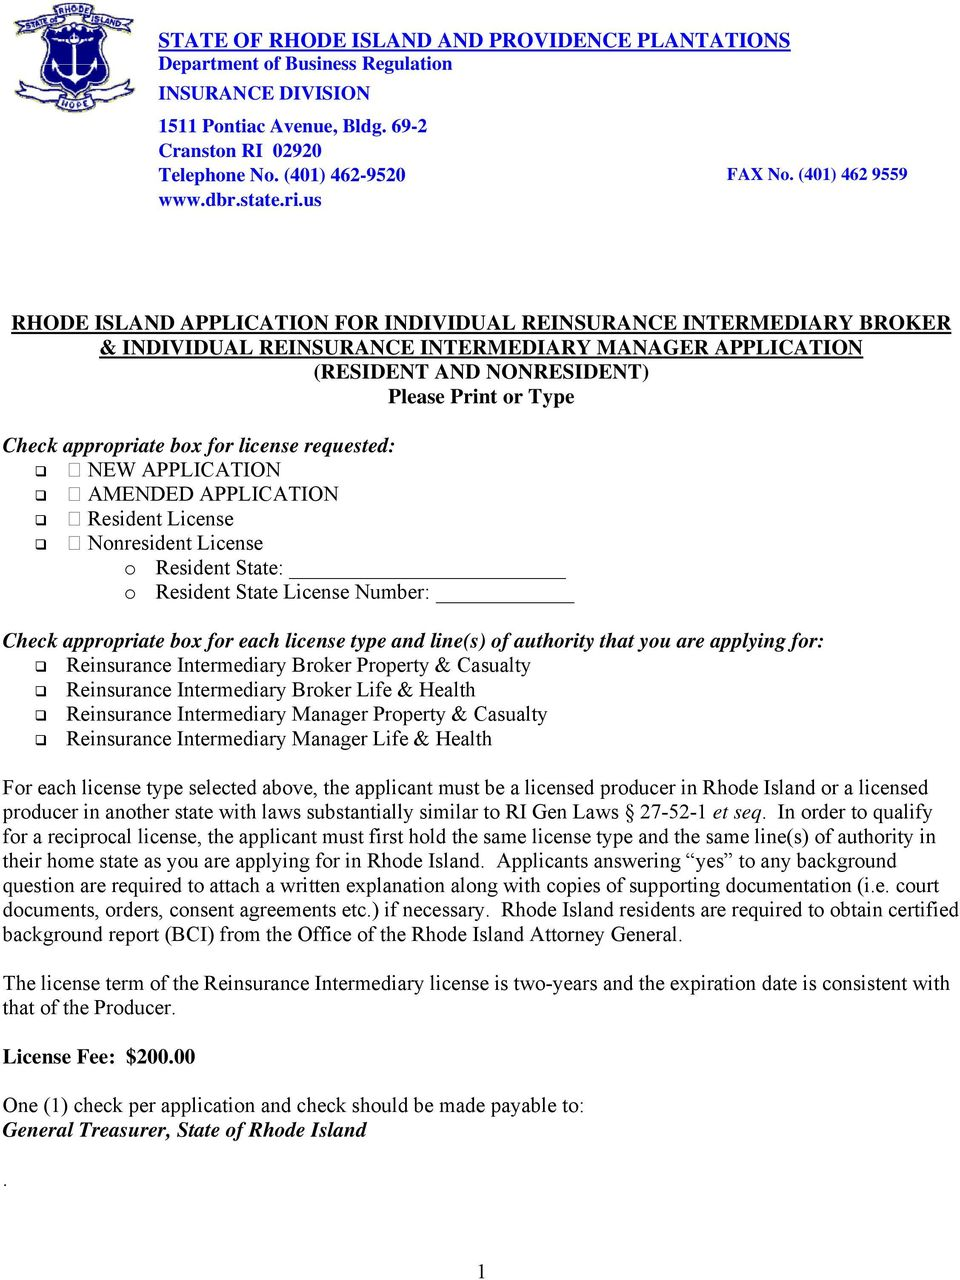 us RHODE ISLAND APPLICATION FOR INDIVIDUAL REINSURANCE INTERMEDIARY BROKER & INDIVIDUAL REINSURANCE INTERMEDIARY MANAGER APPLICATION (RESIDENT AND NONRESIDENT) Please Print or Type Check appropriate